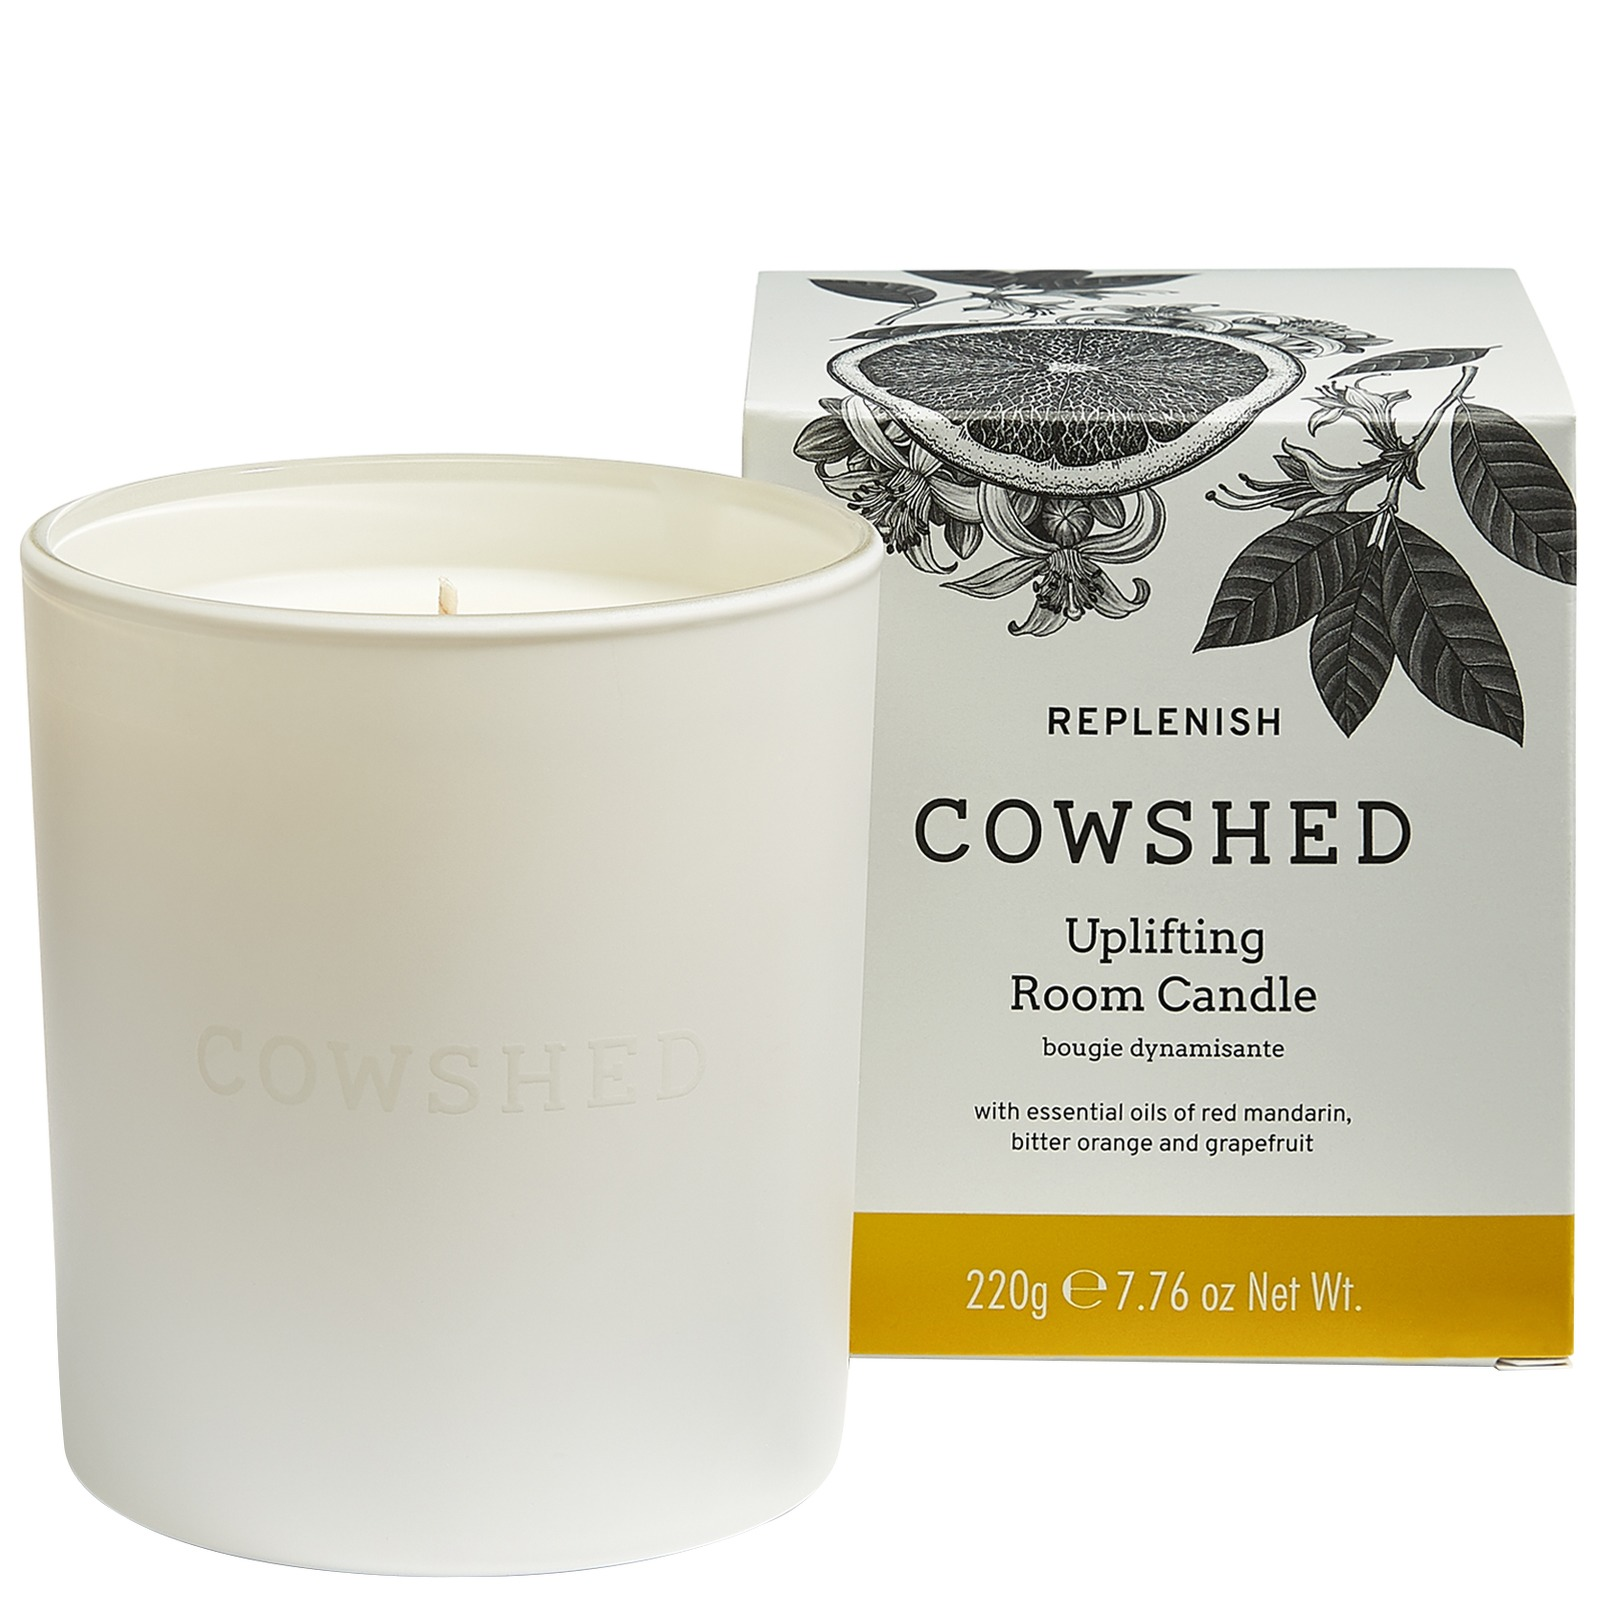 Cowshed At Home Replenish Uplifting Room Candle 220g